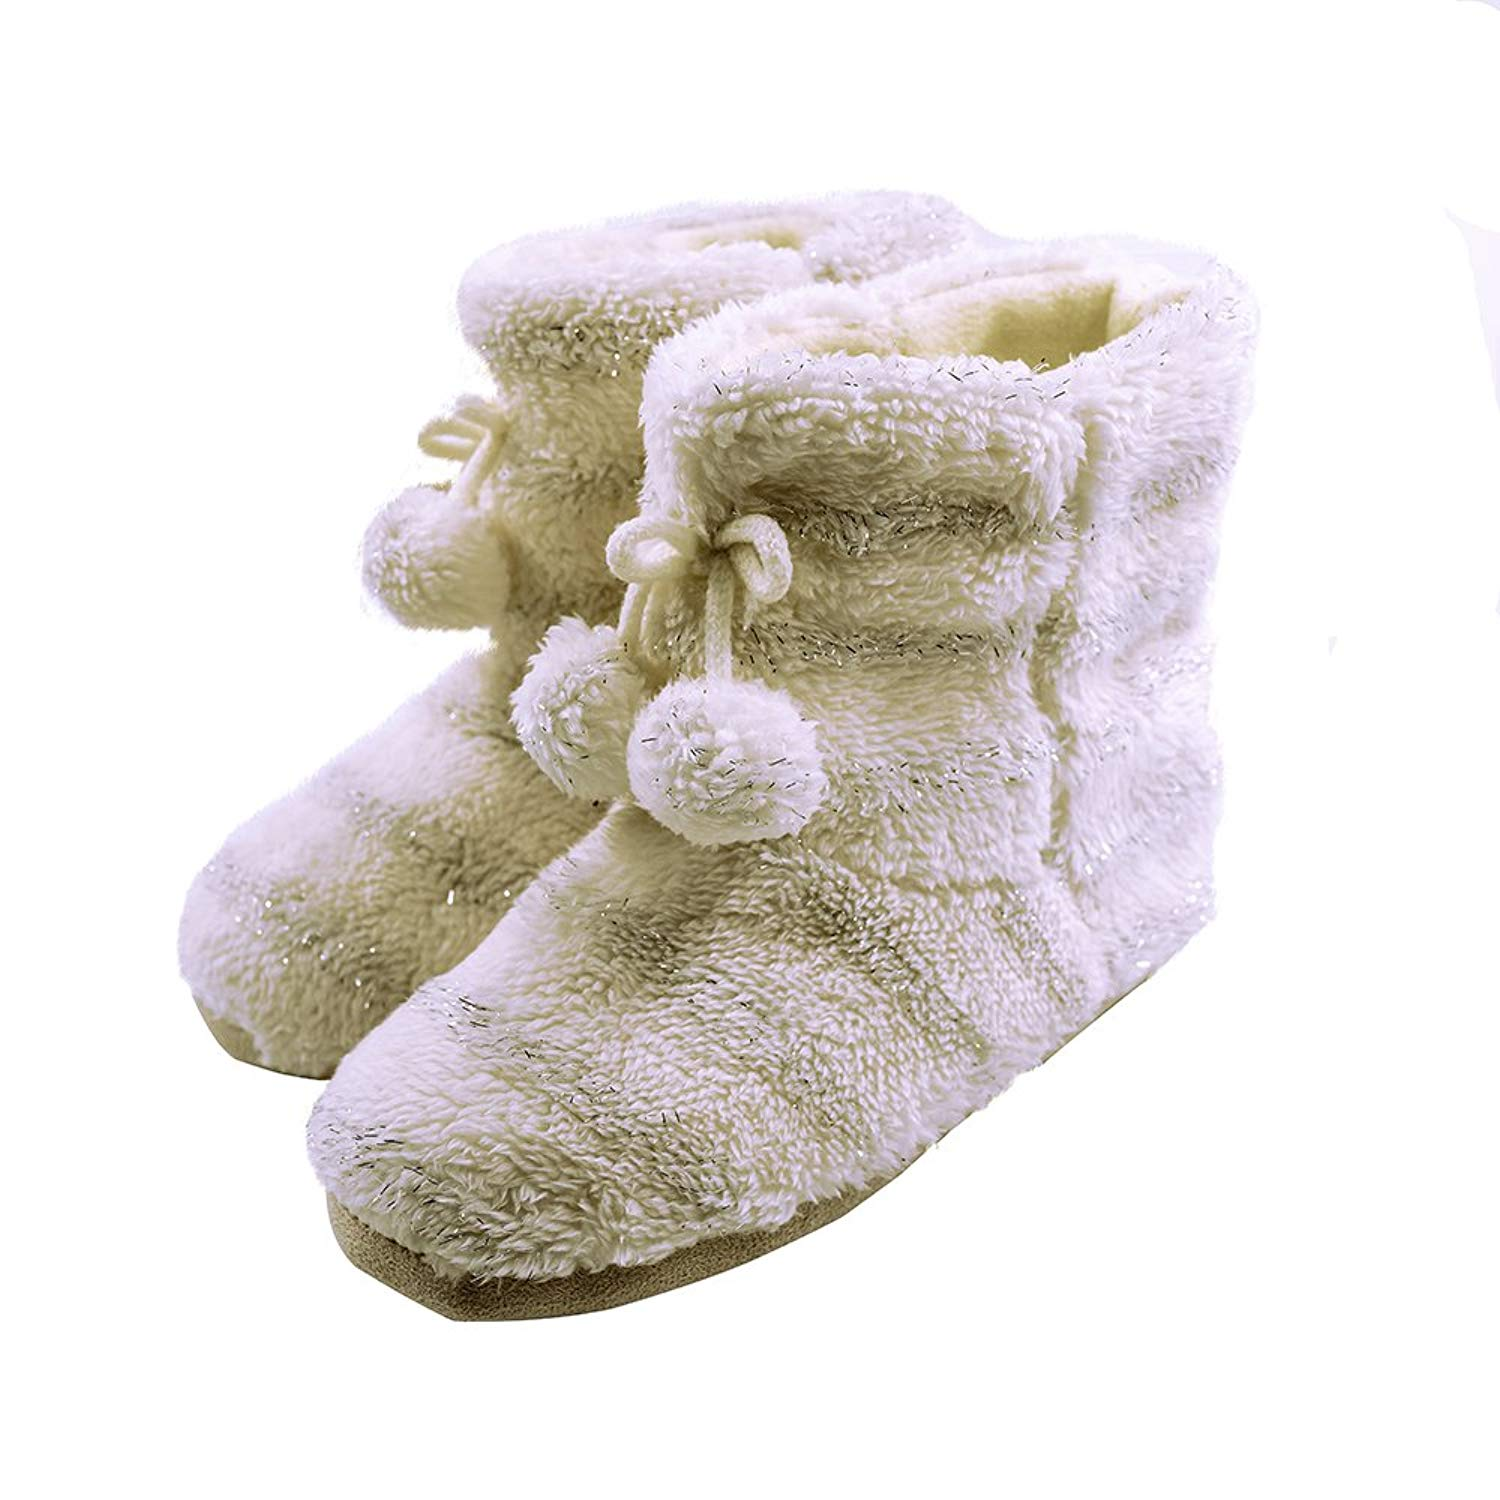 e4247d21f3d Get Quotations · Womens Fluffy Plush Slipper Boots Memory Foam Warm Cozy  Faux Fur Indoor House Booties Pom Pom